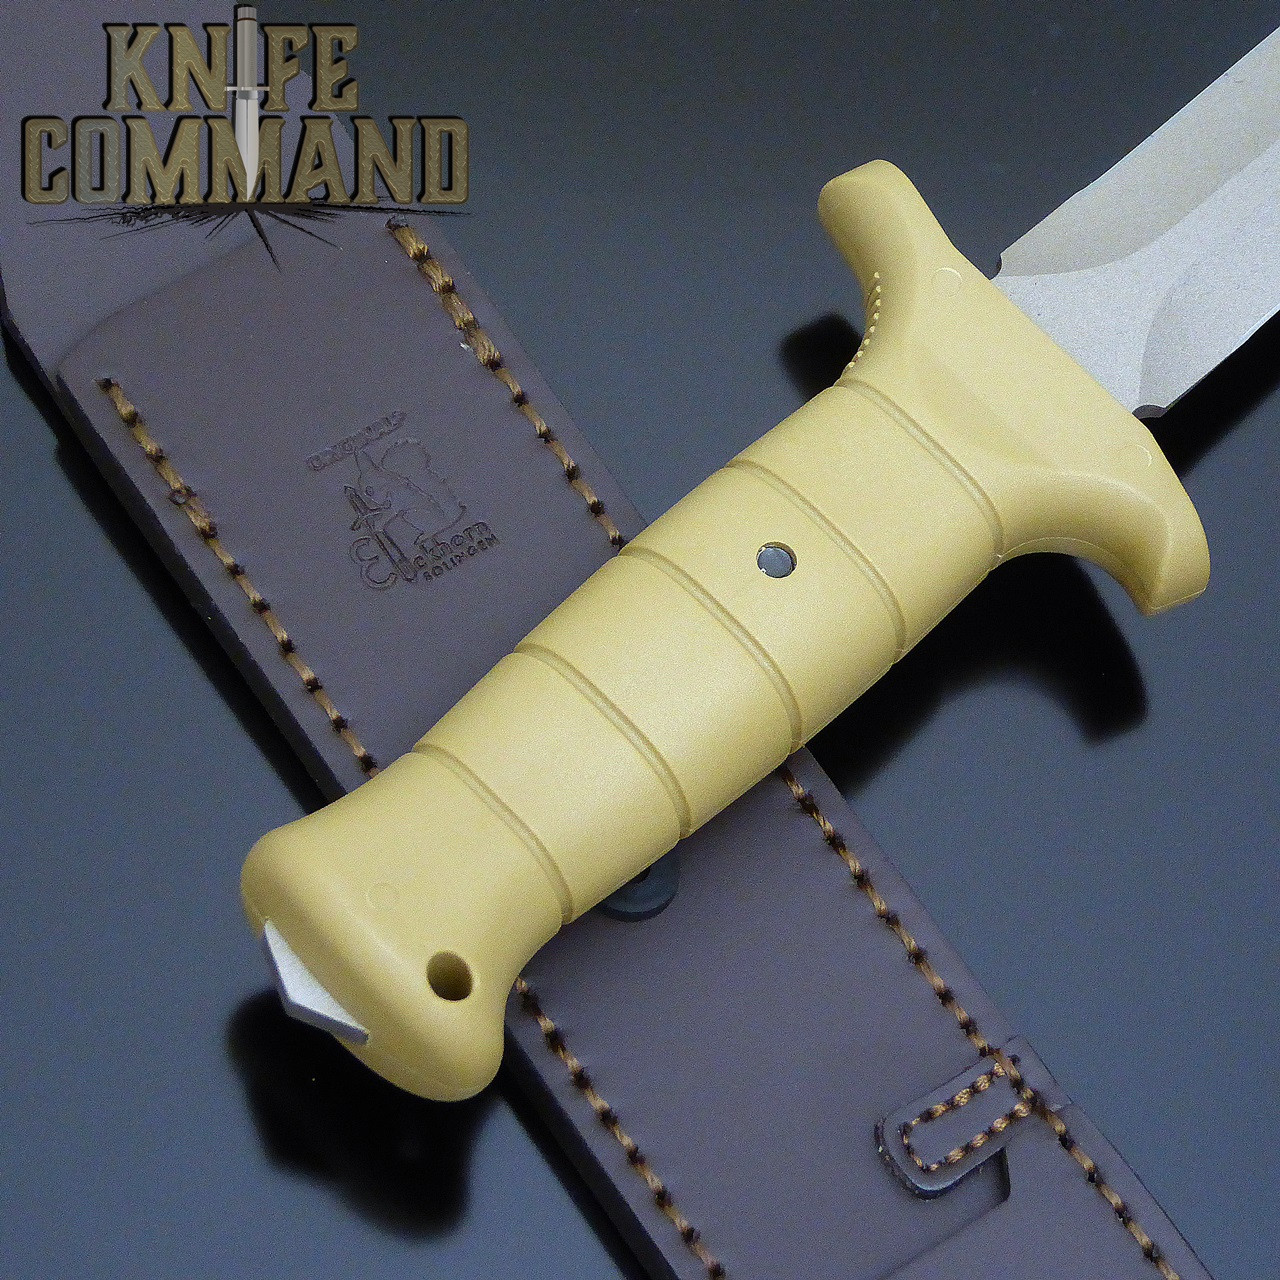 Glass reinforced handle with exposed tang.